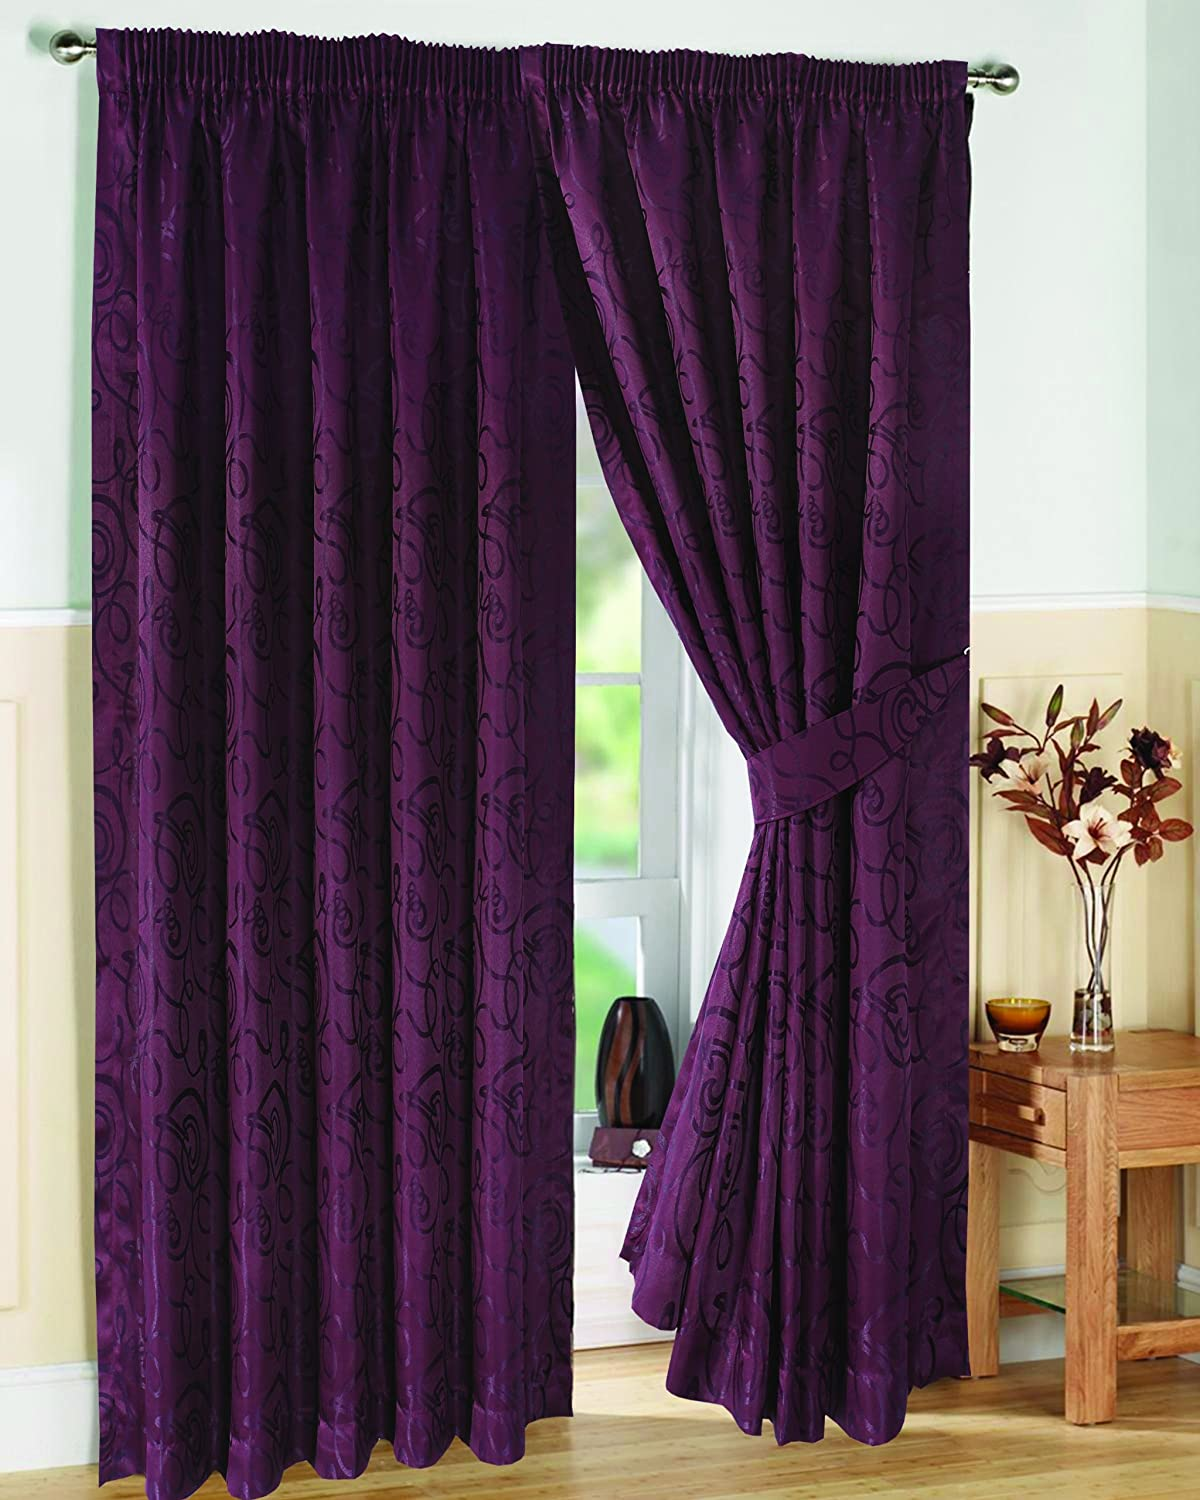 thermal curtain willow jacquard of window ip blackout in curtains set insulated walmart com panels pair